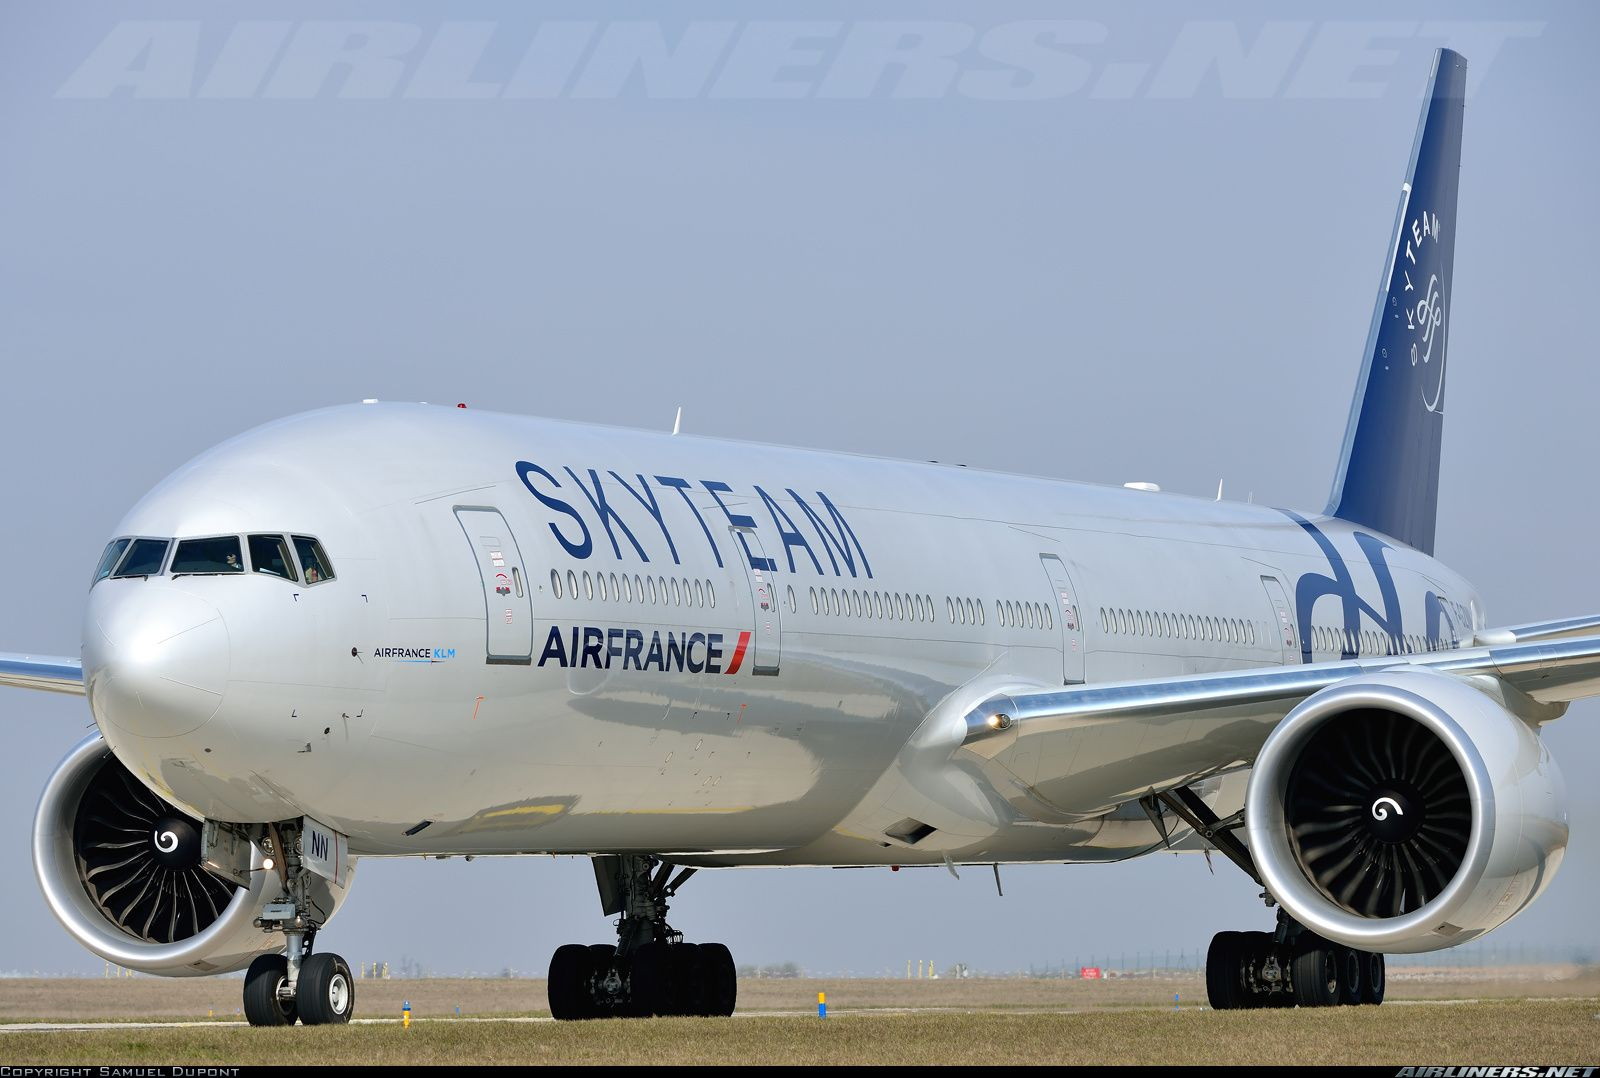 AF 777300er in the Skyteam livery Compagnie aérienne